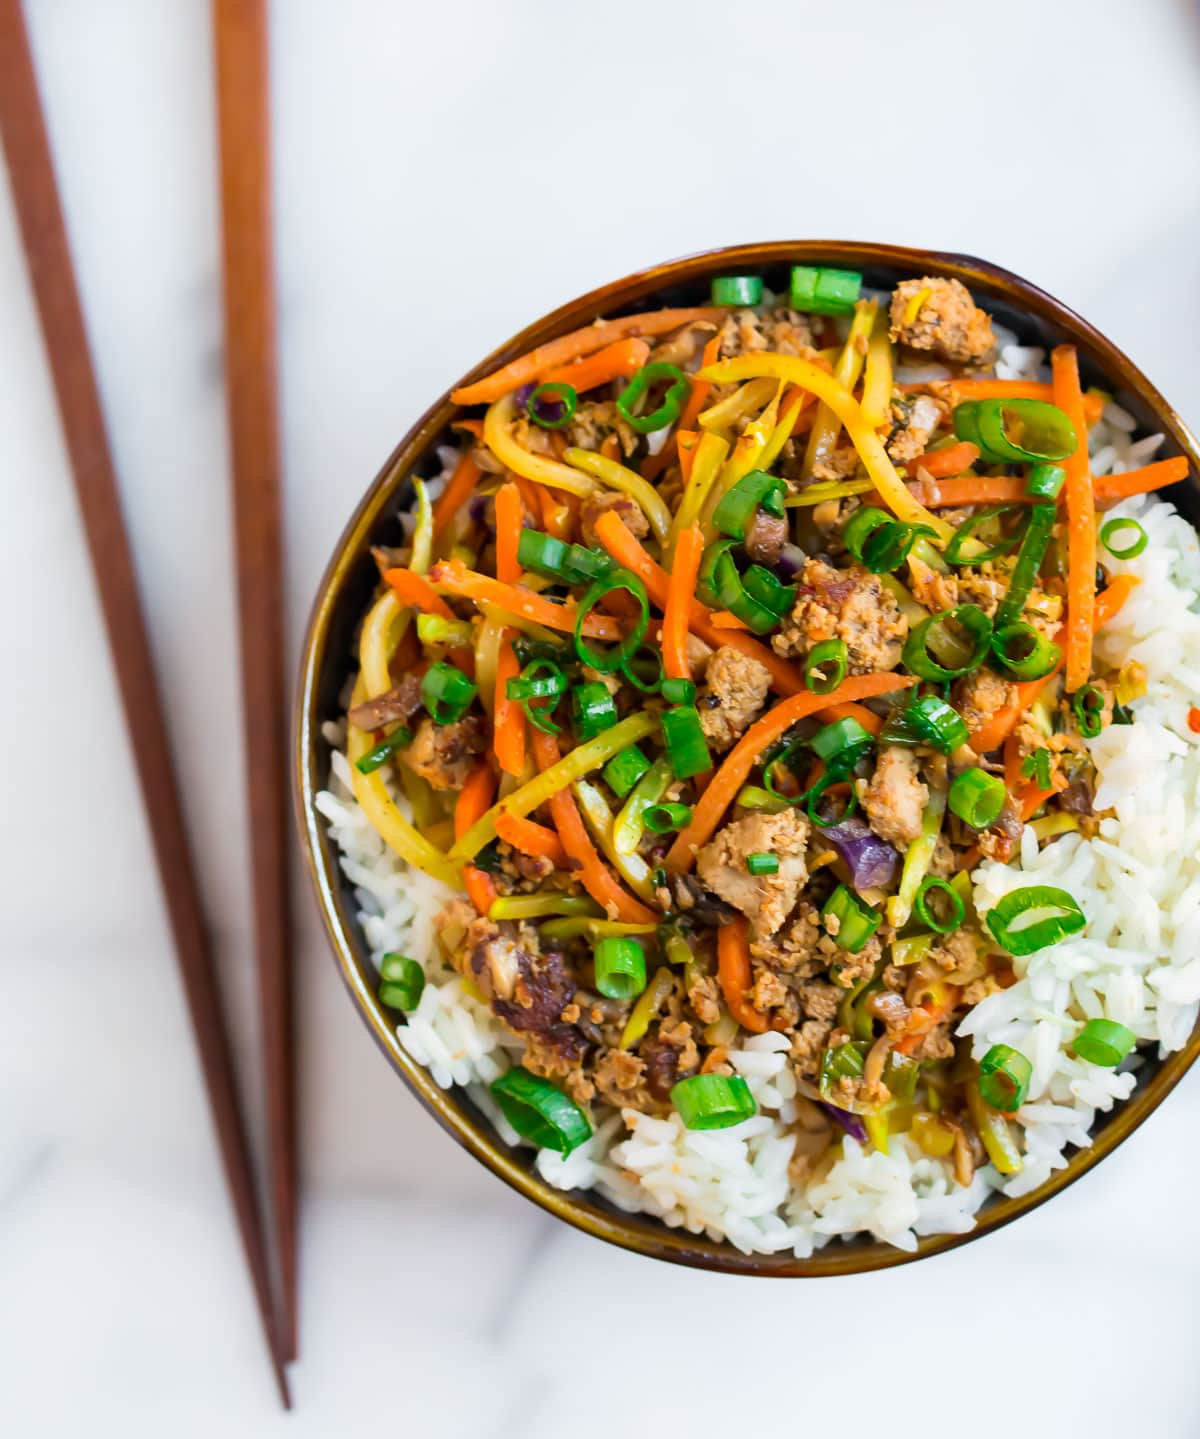 Rice, ground turkey, and veggies in a bowl that tastes like an egg roll